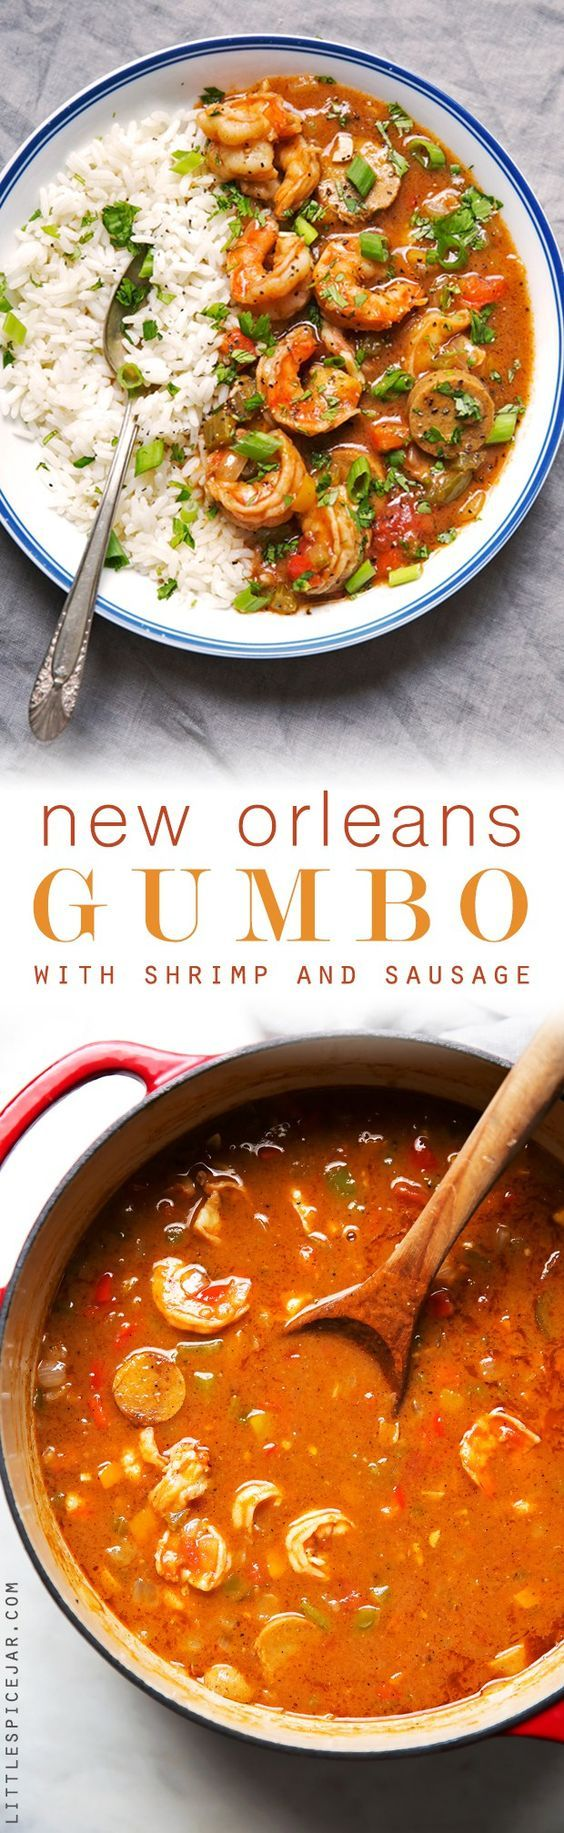 New Orleans Gumbo with Shrimp and Sausage | Little Spice Jar